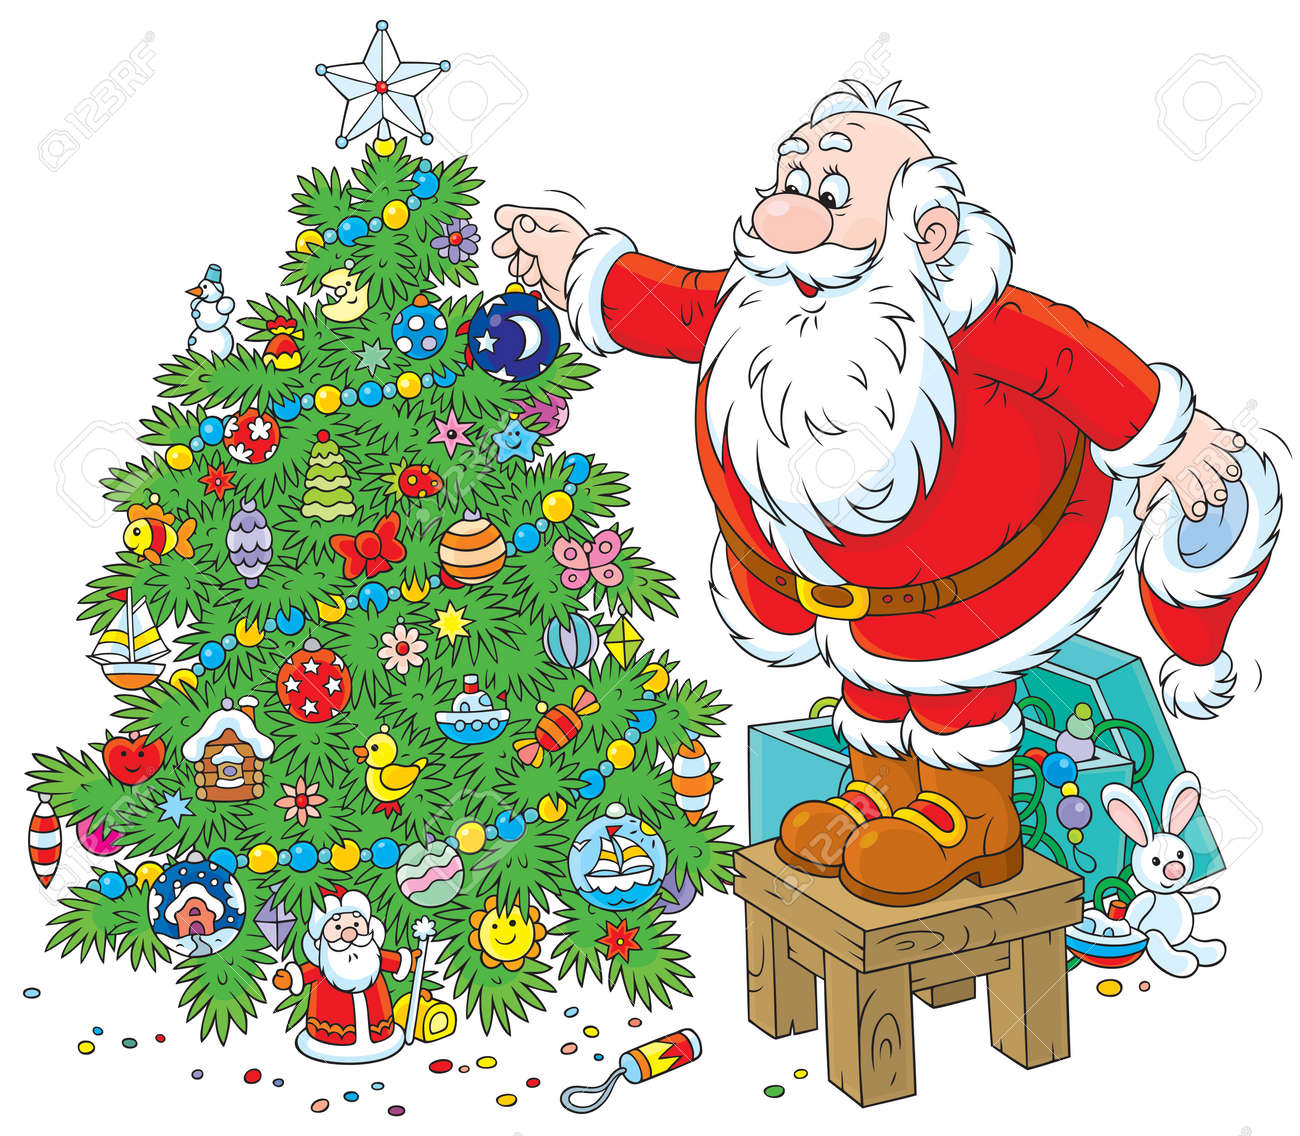 Father Christmas Images Free.Father Christmas Decorates A Fir To Holiday